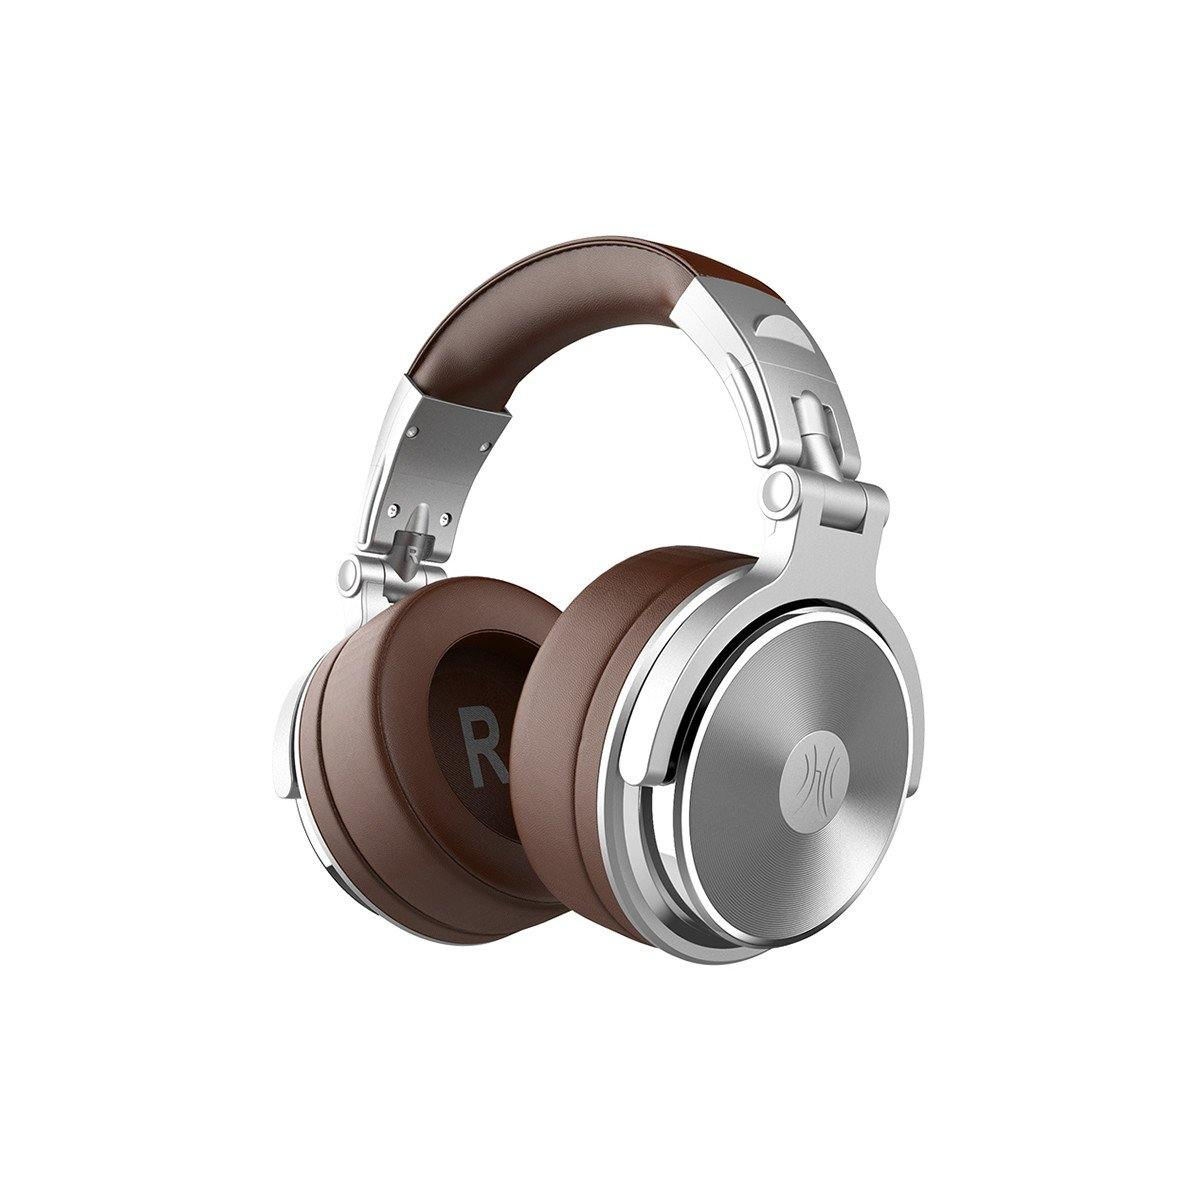 OneOdio® Pro-30 Studio Wired Headphones (Silver) - OneOdio